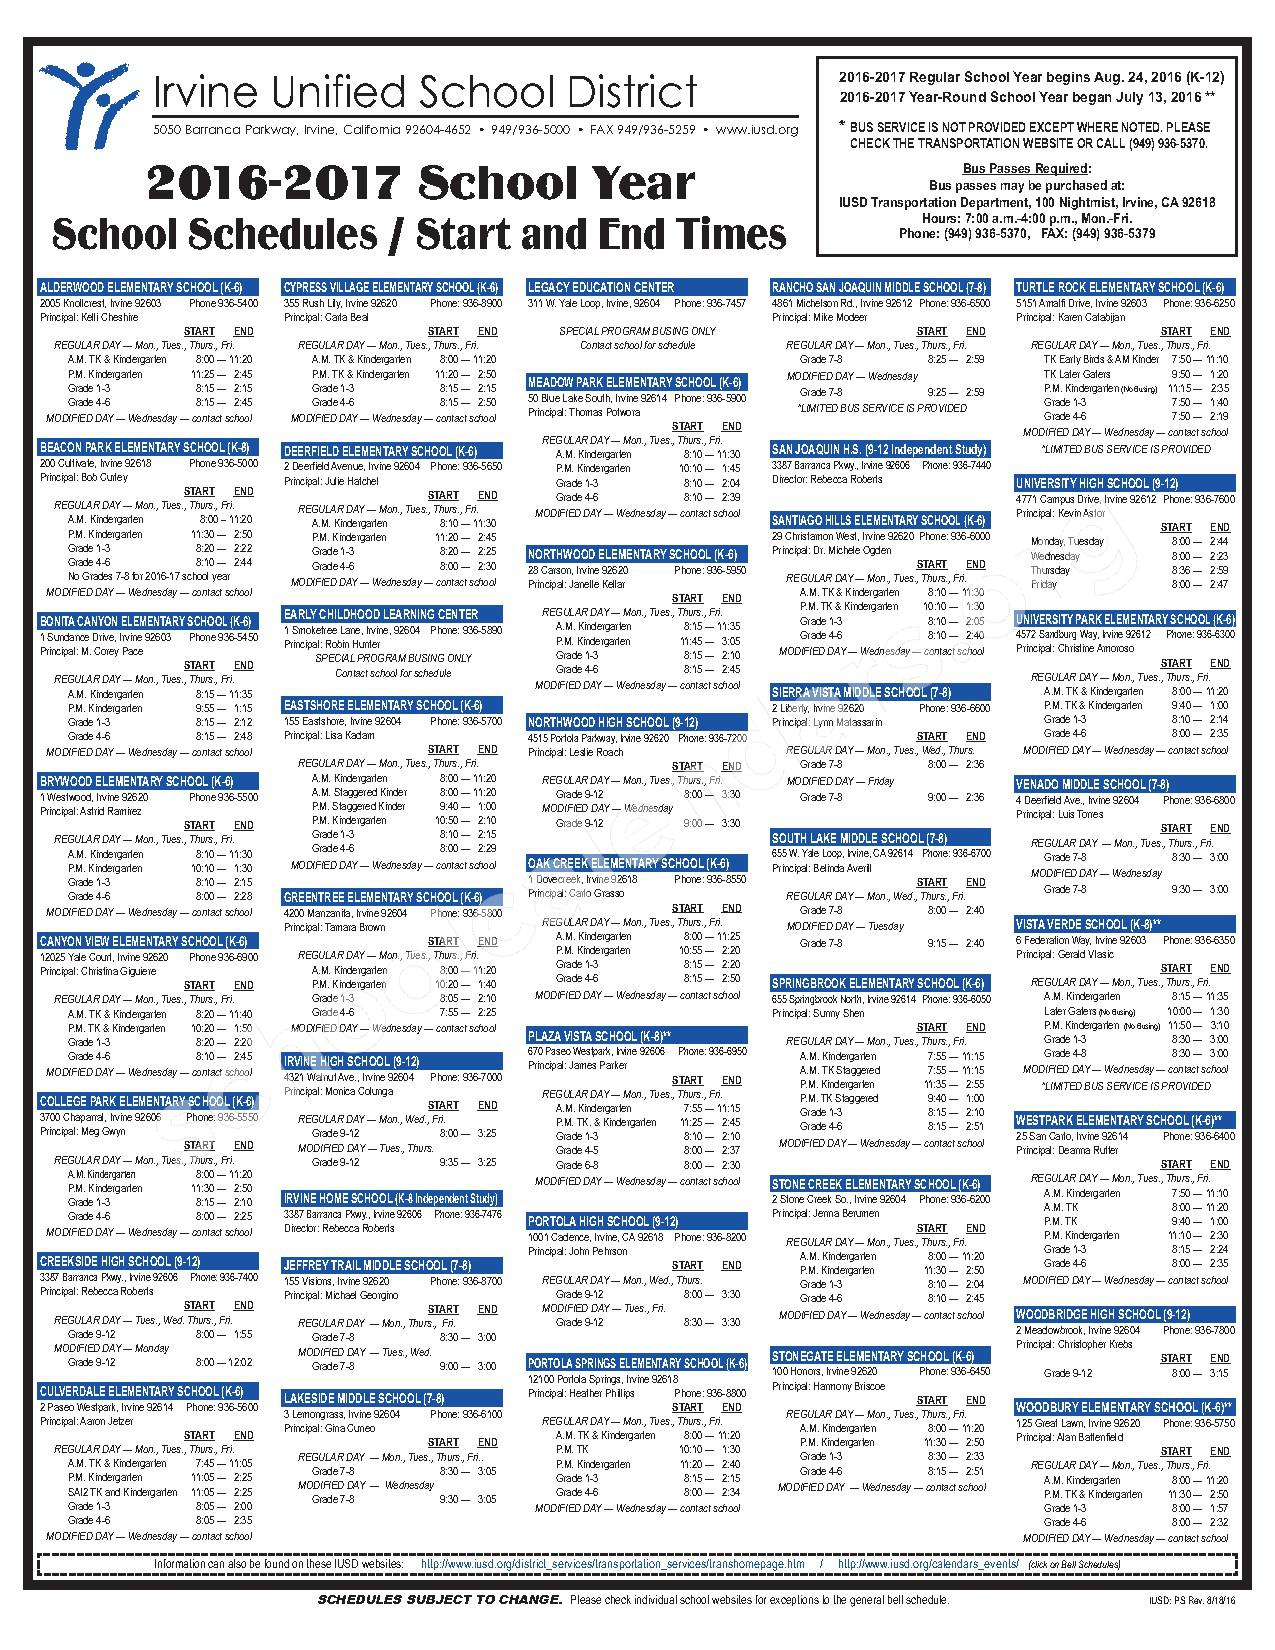 2016 - 2017 Bell Schedules – Irvine Unified School District – page 1